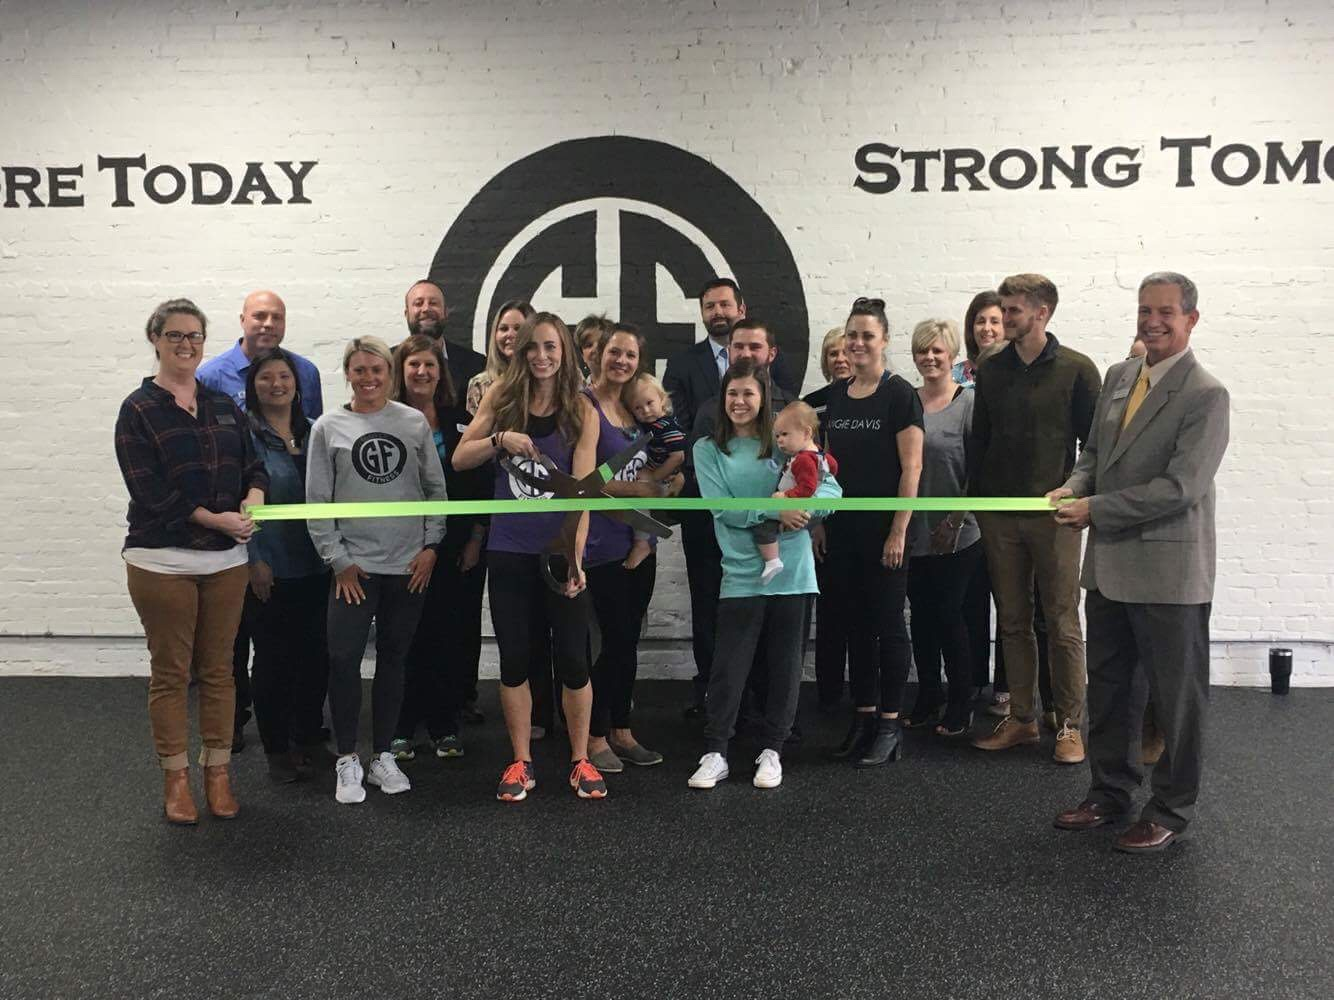 Our Ribbon Cutting on October 11th, 2017! We have such a supportive Chamber!